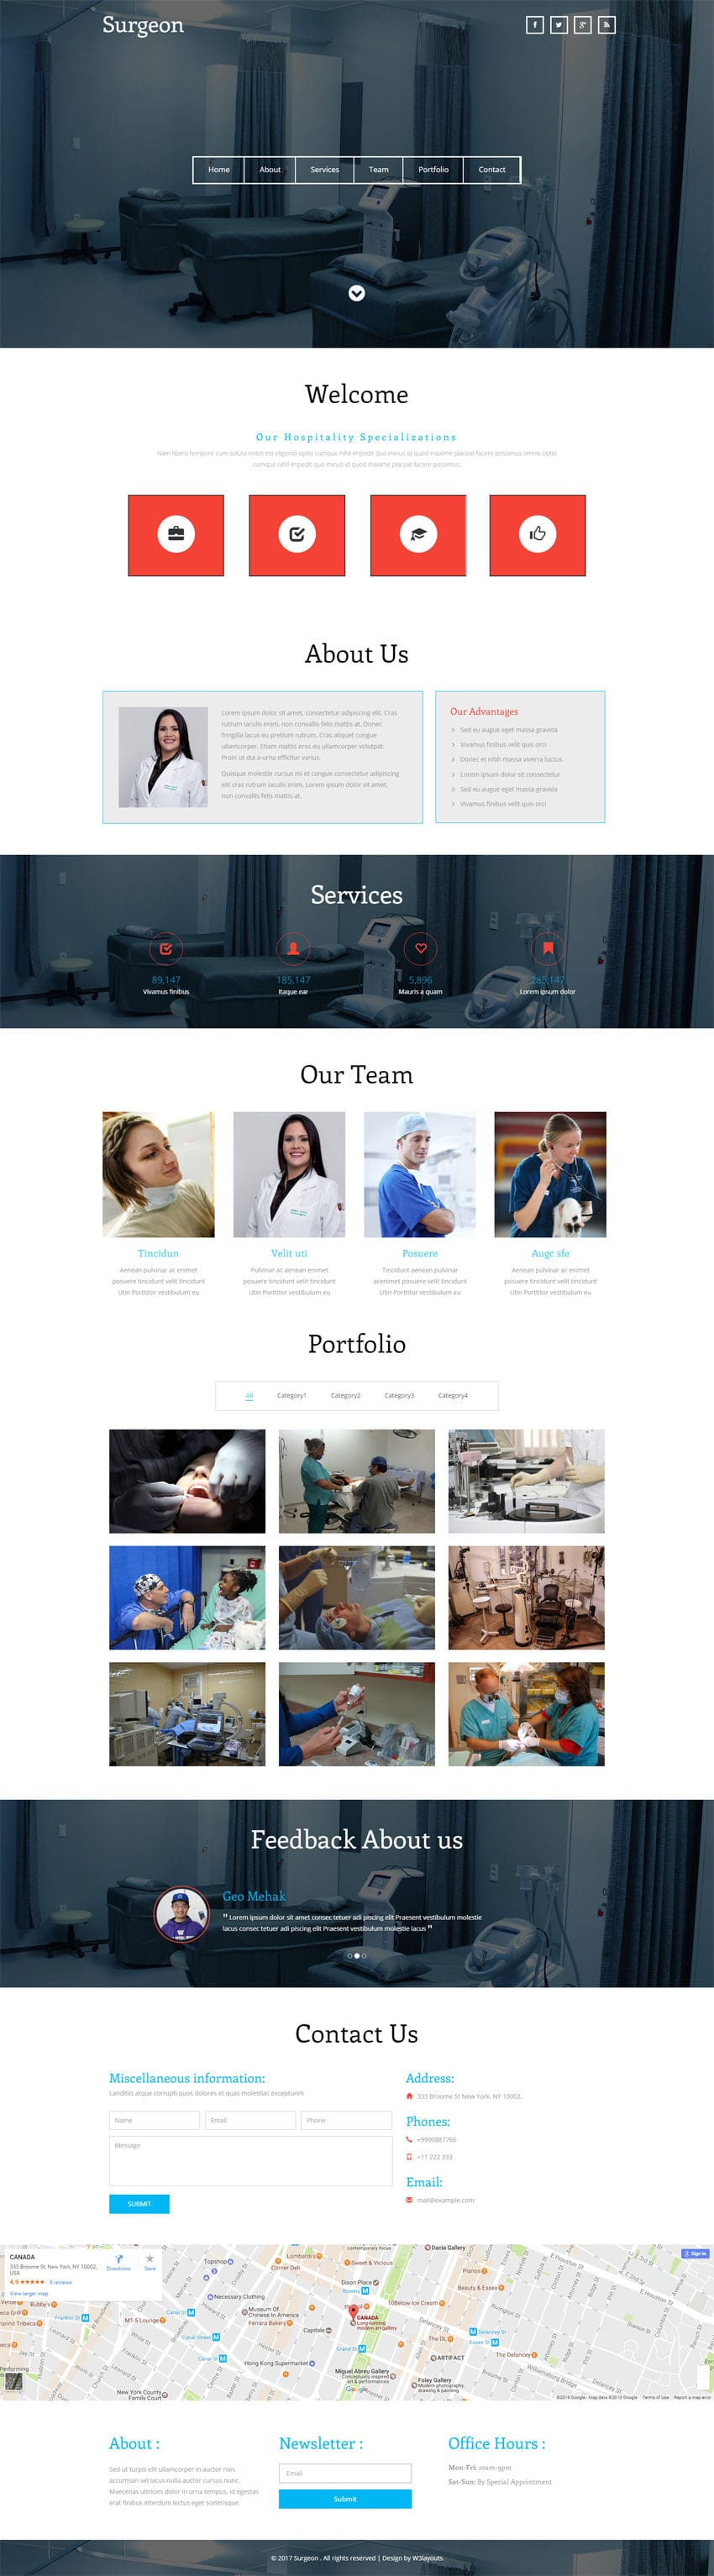 Surgeon a medical category flat bootstrap responsive web template pronofoot35fo Choice Image